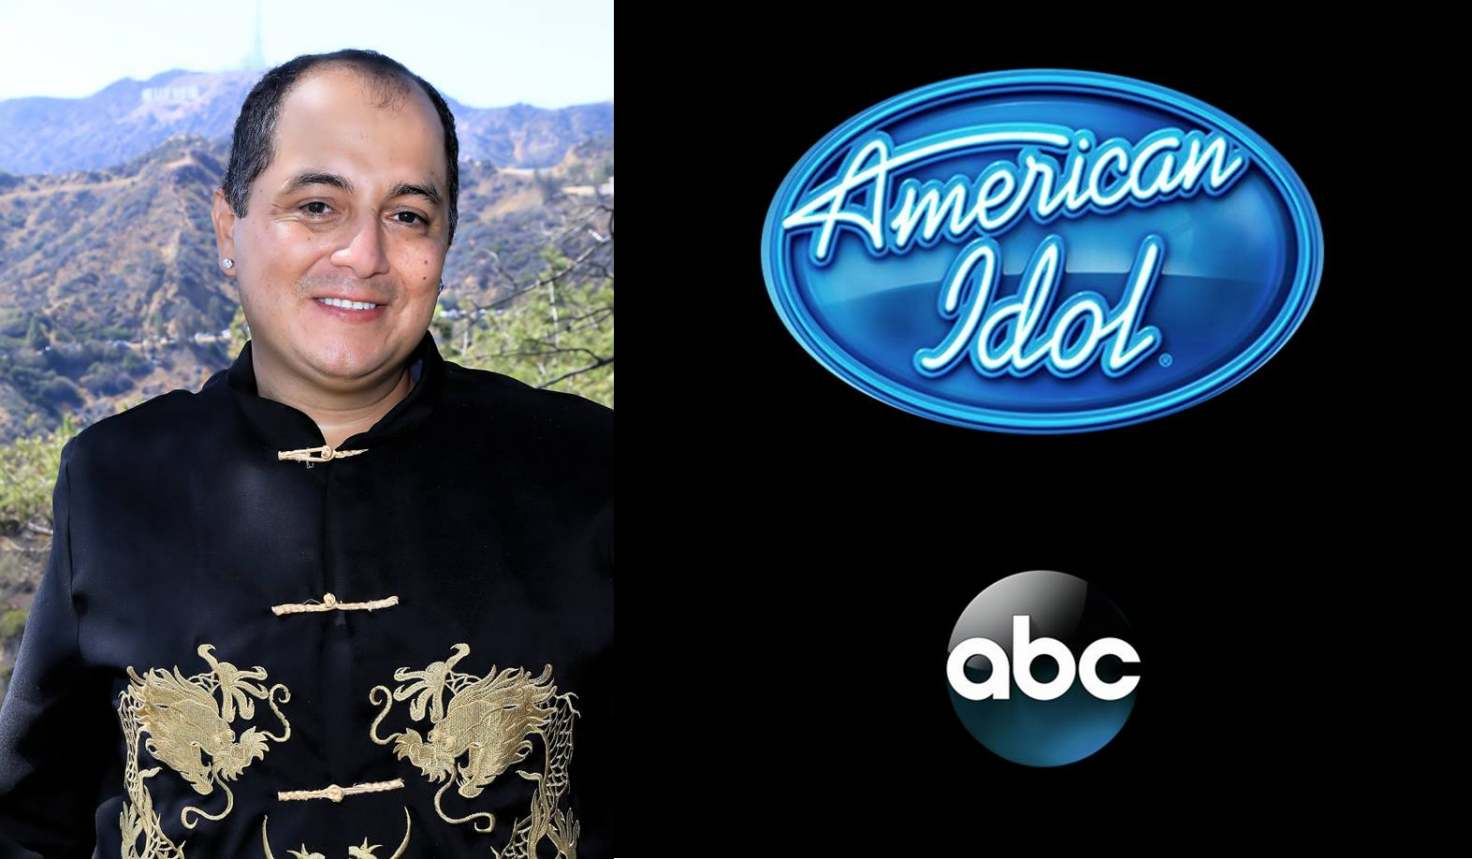 Steven Escobar Kidnnaped by American Idol Contesta